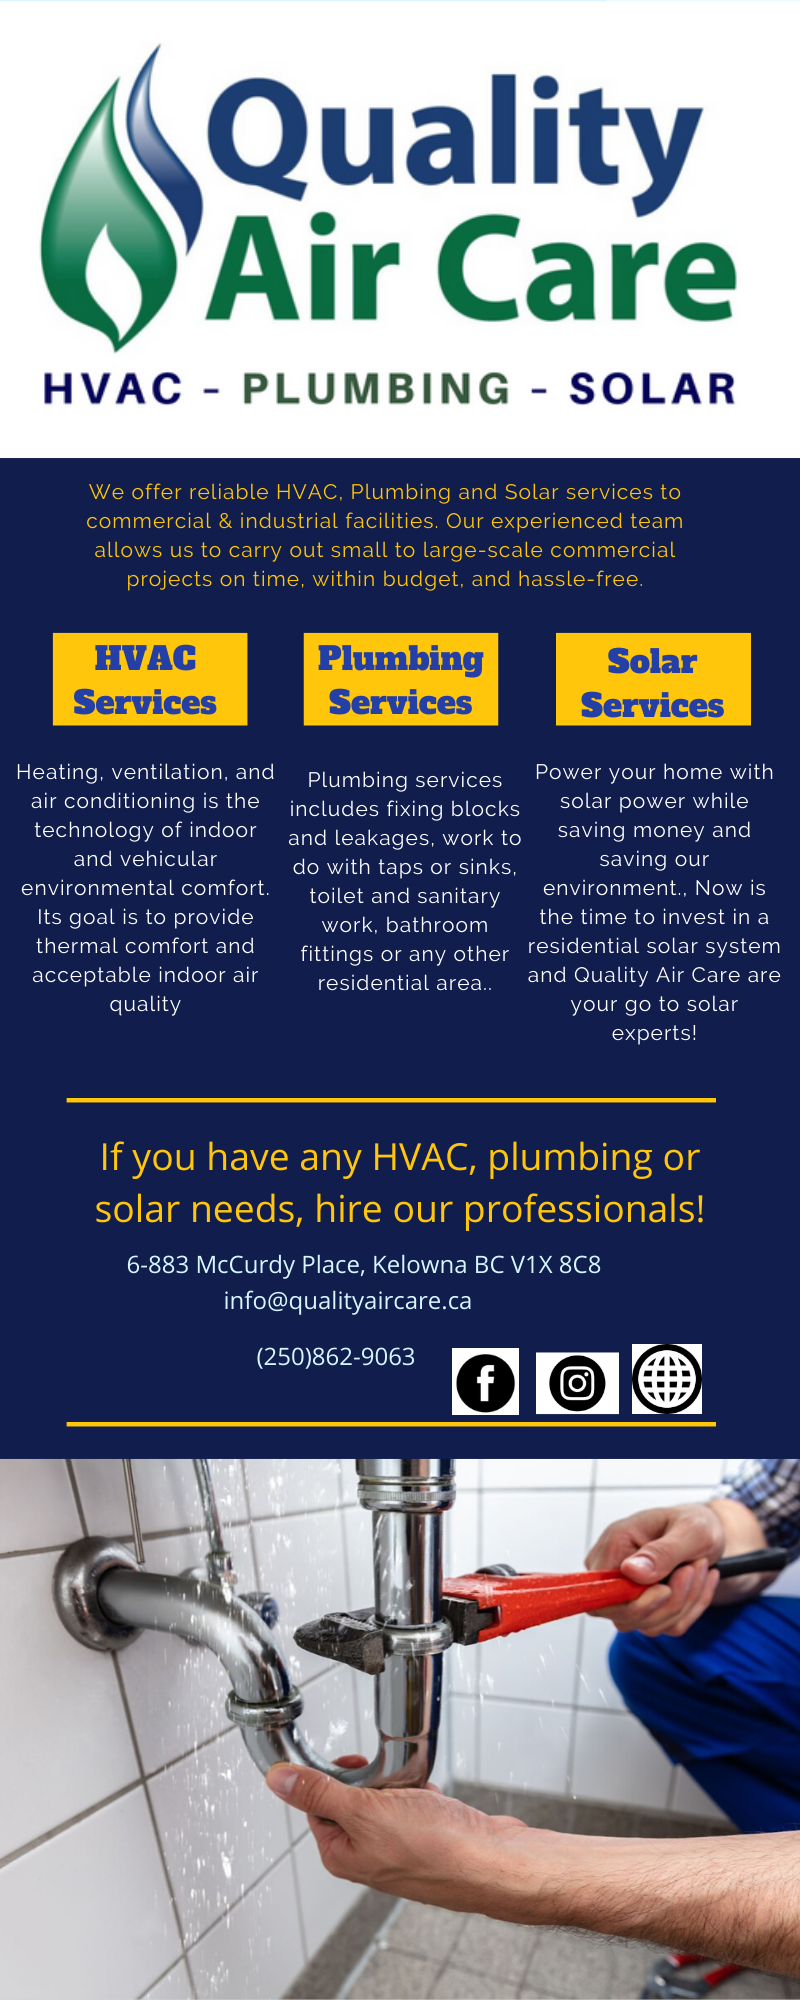 We Are The Trusted Hvac Plumbing And Heating Company In Kelowna